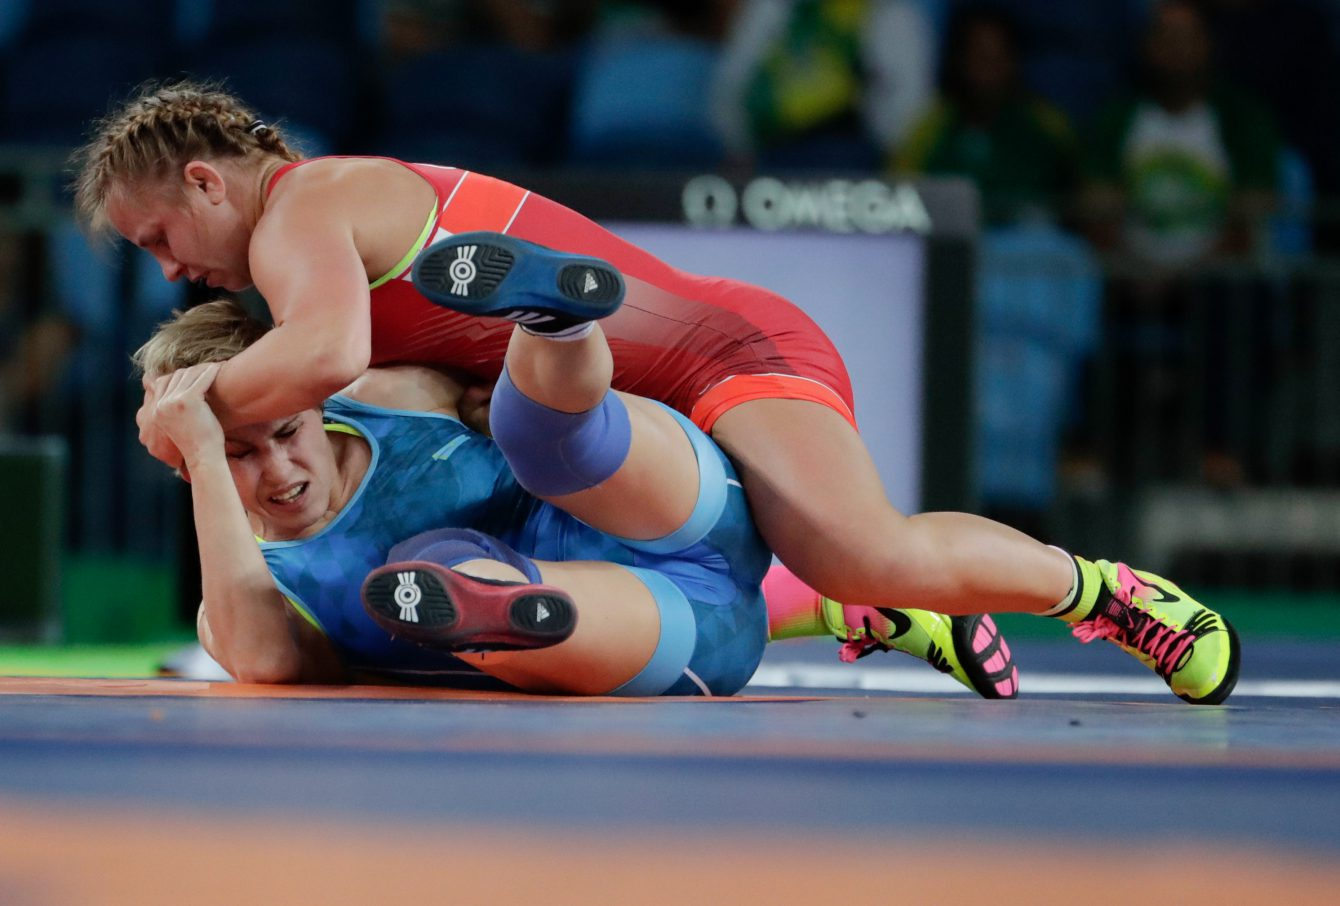 Female players competing in a wrestling match